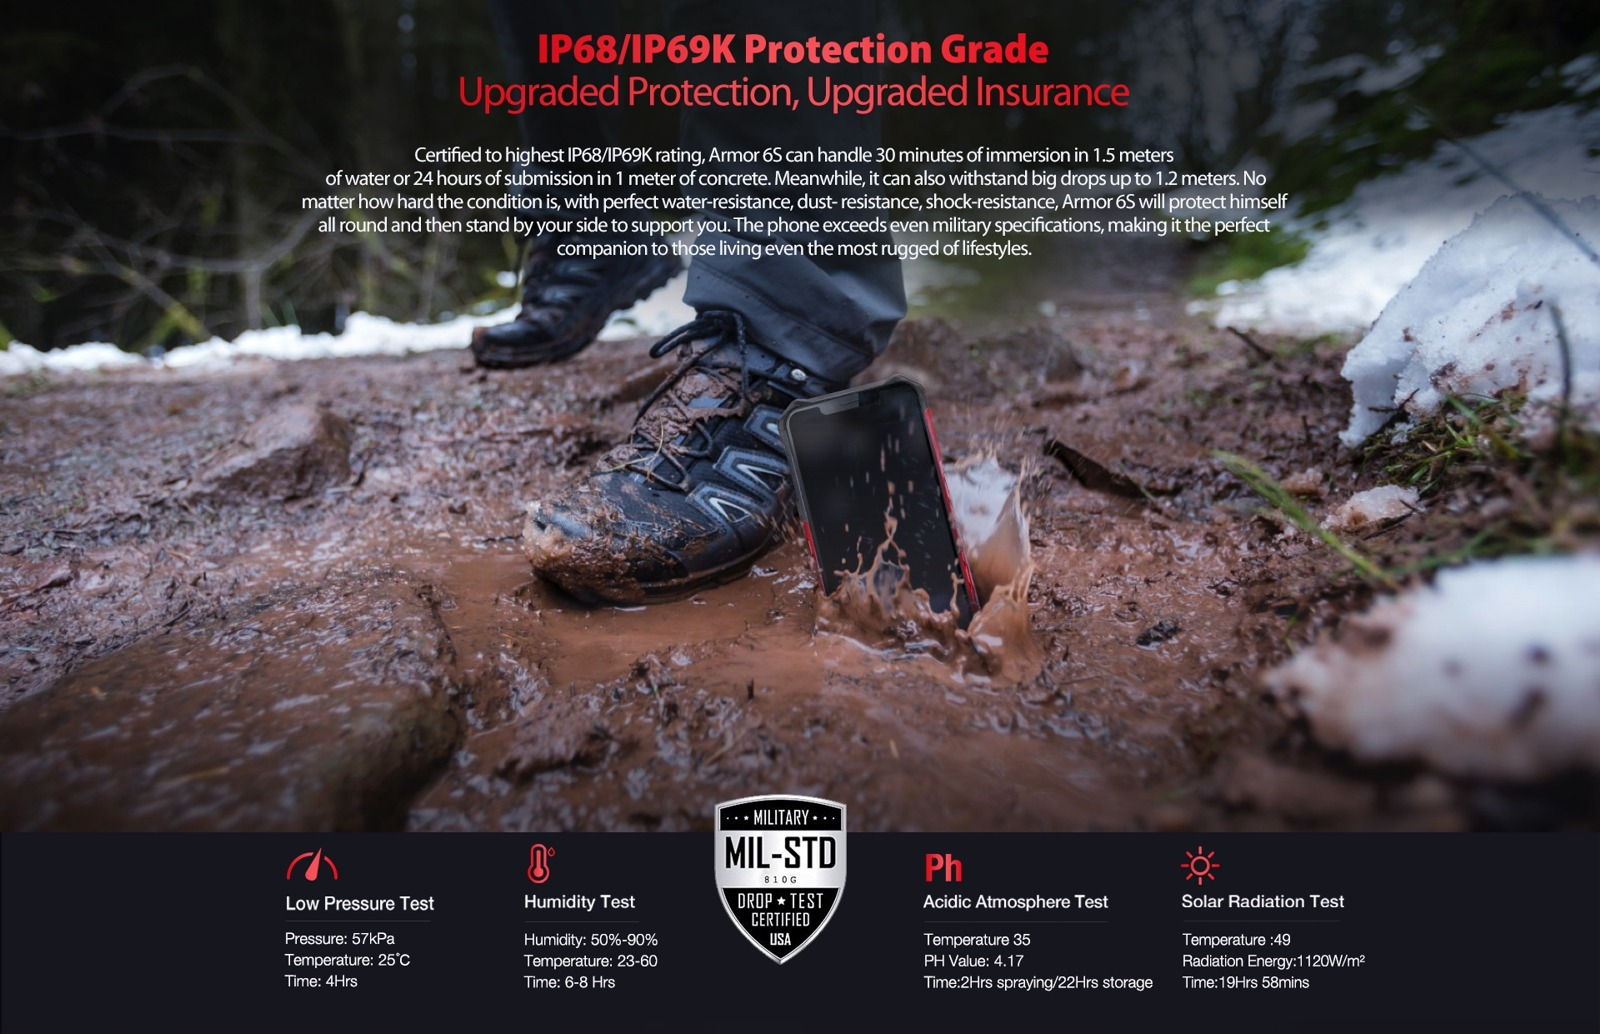 IP68 / IP69K rating protection